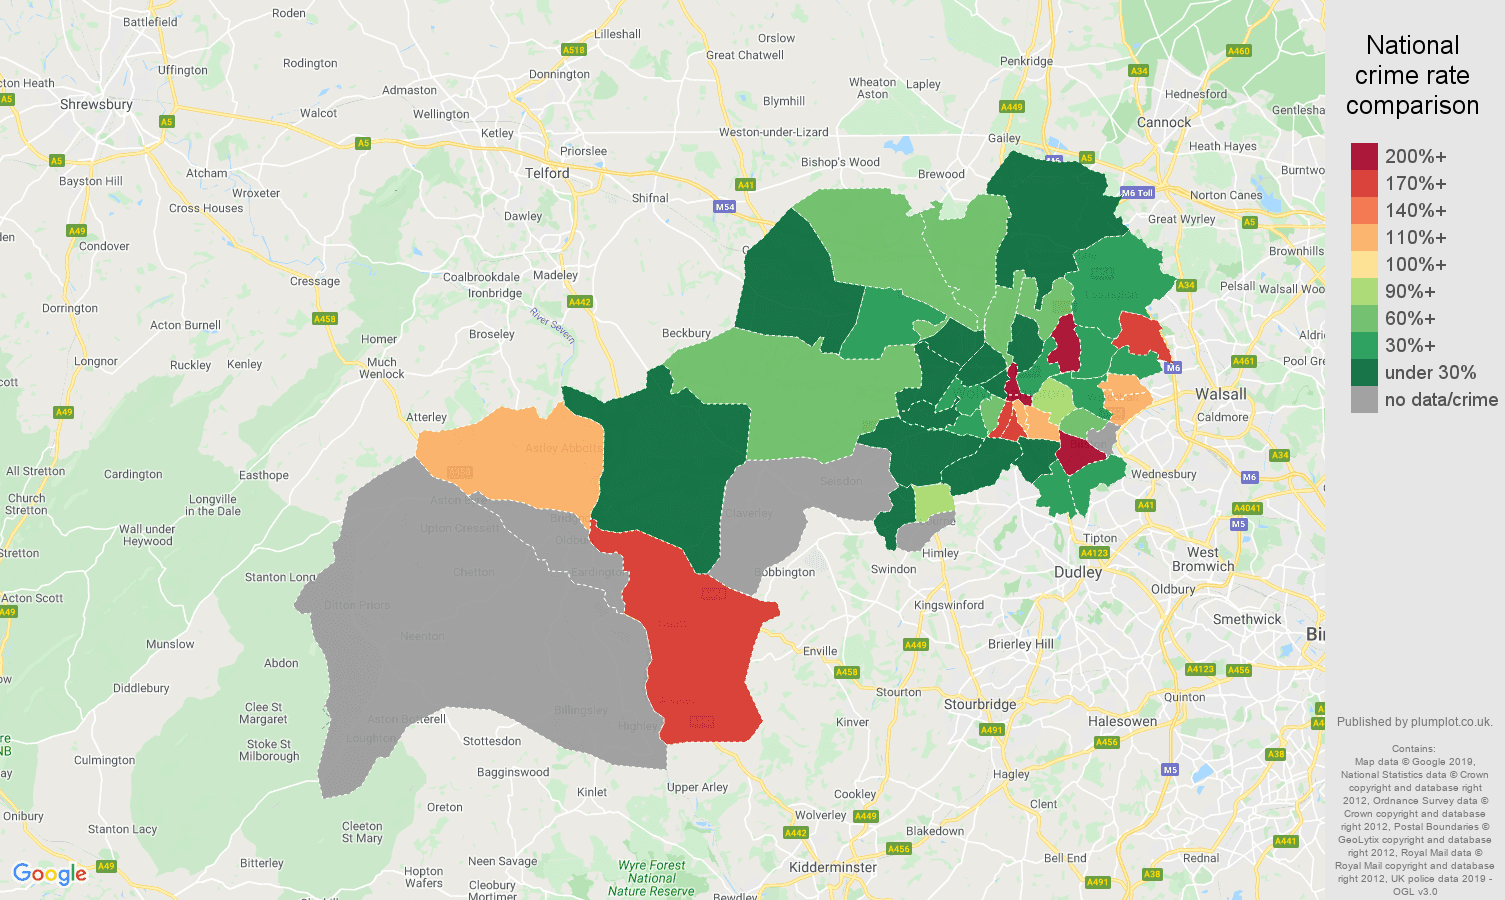 Wolverhampton shoplifting crime rate comparison map